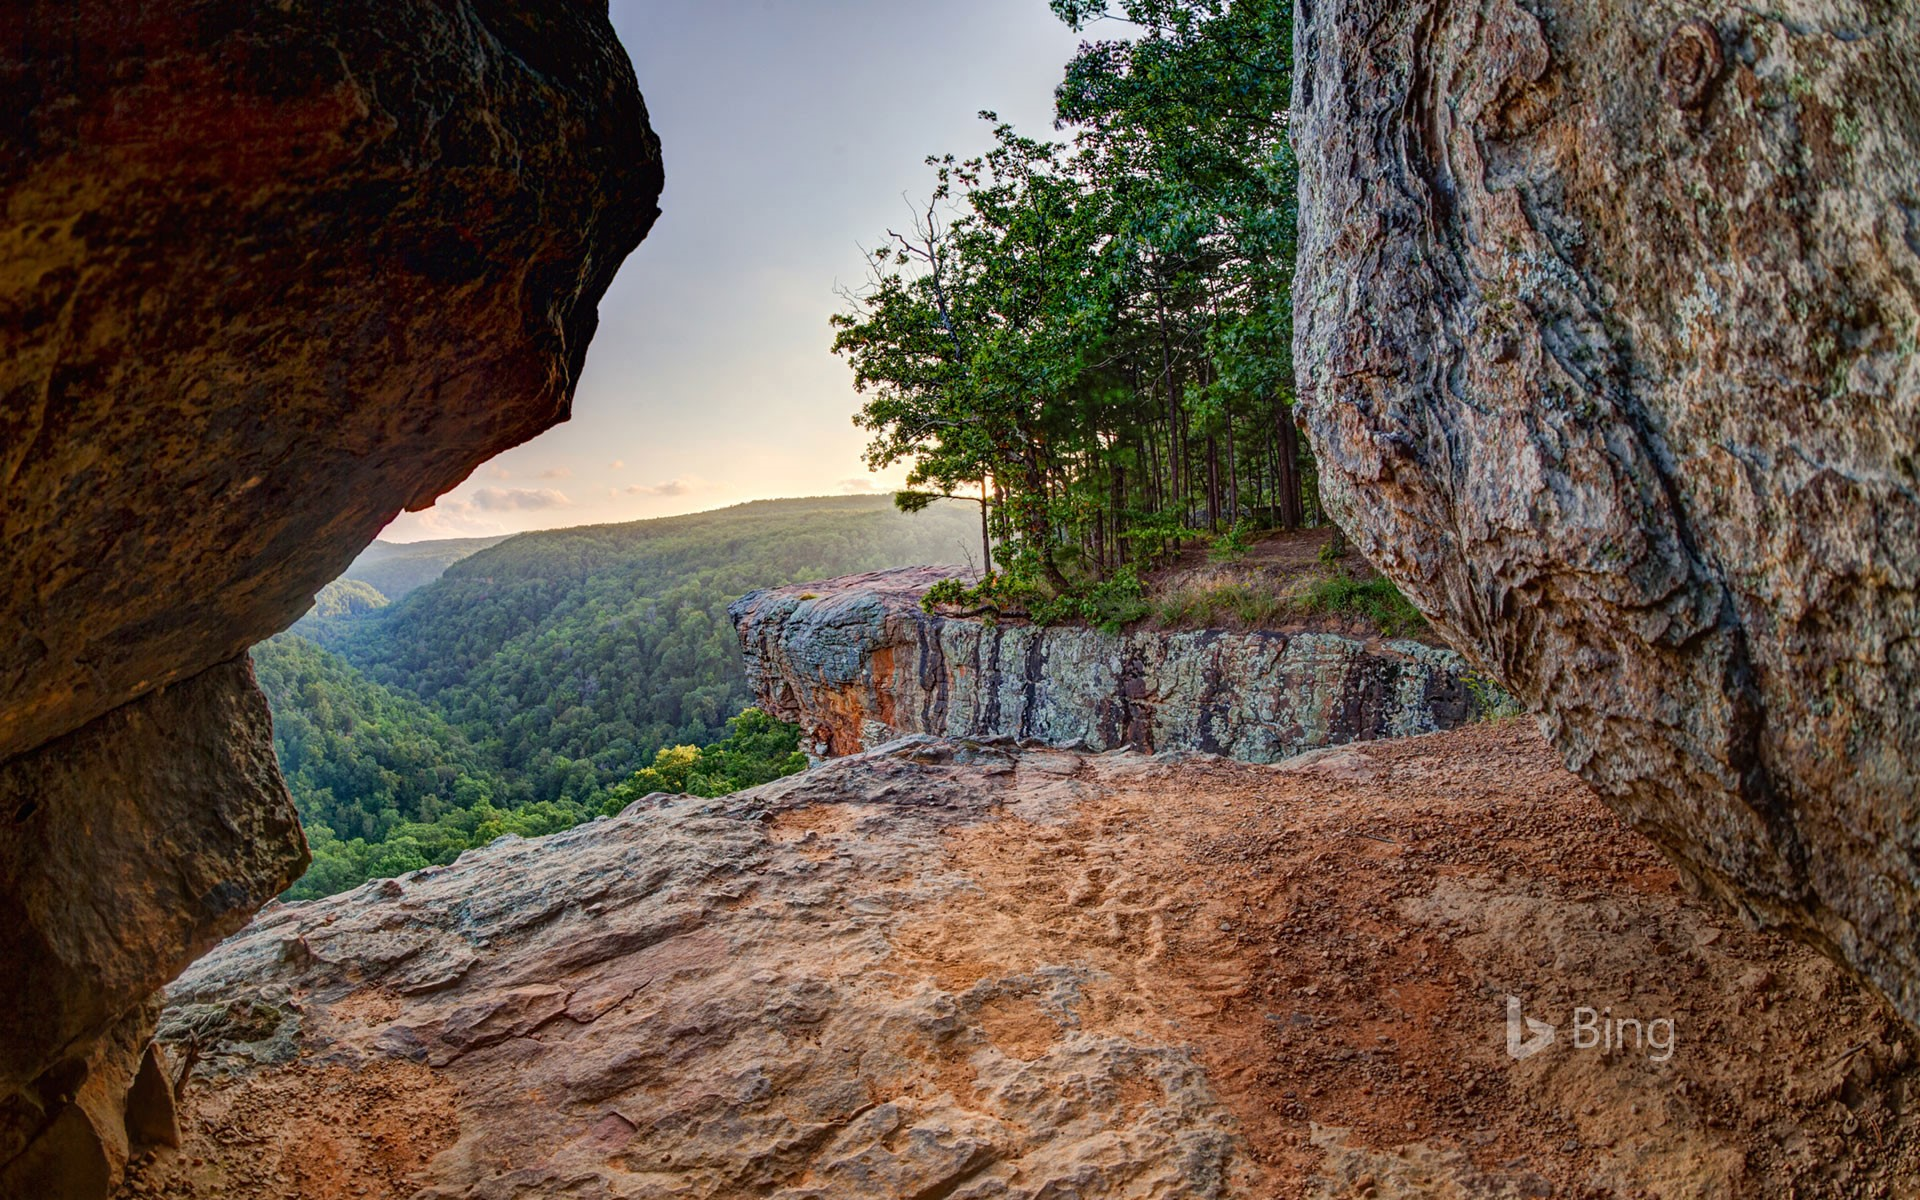 Lookout east of Whitaker Point Trail (Hawksbill Crag) in the Upper Buffalo Wilderness Area, Ozark National Forest, Arkansas